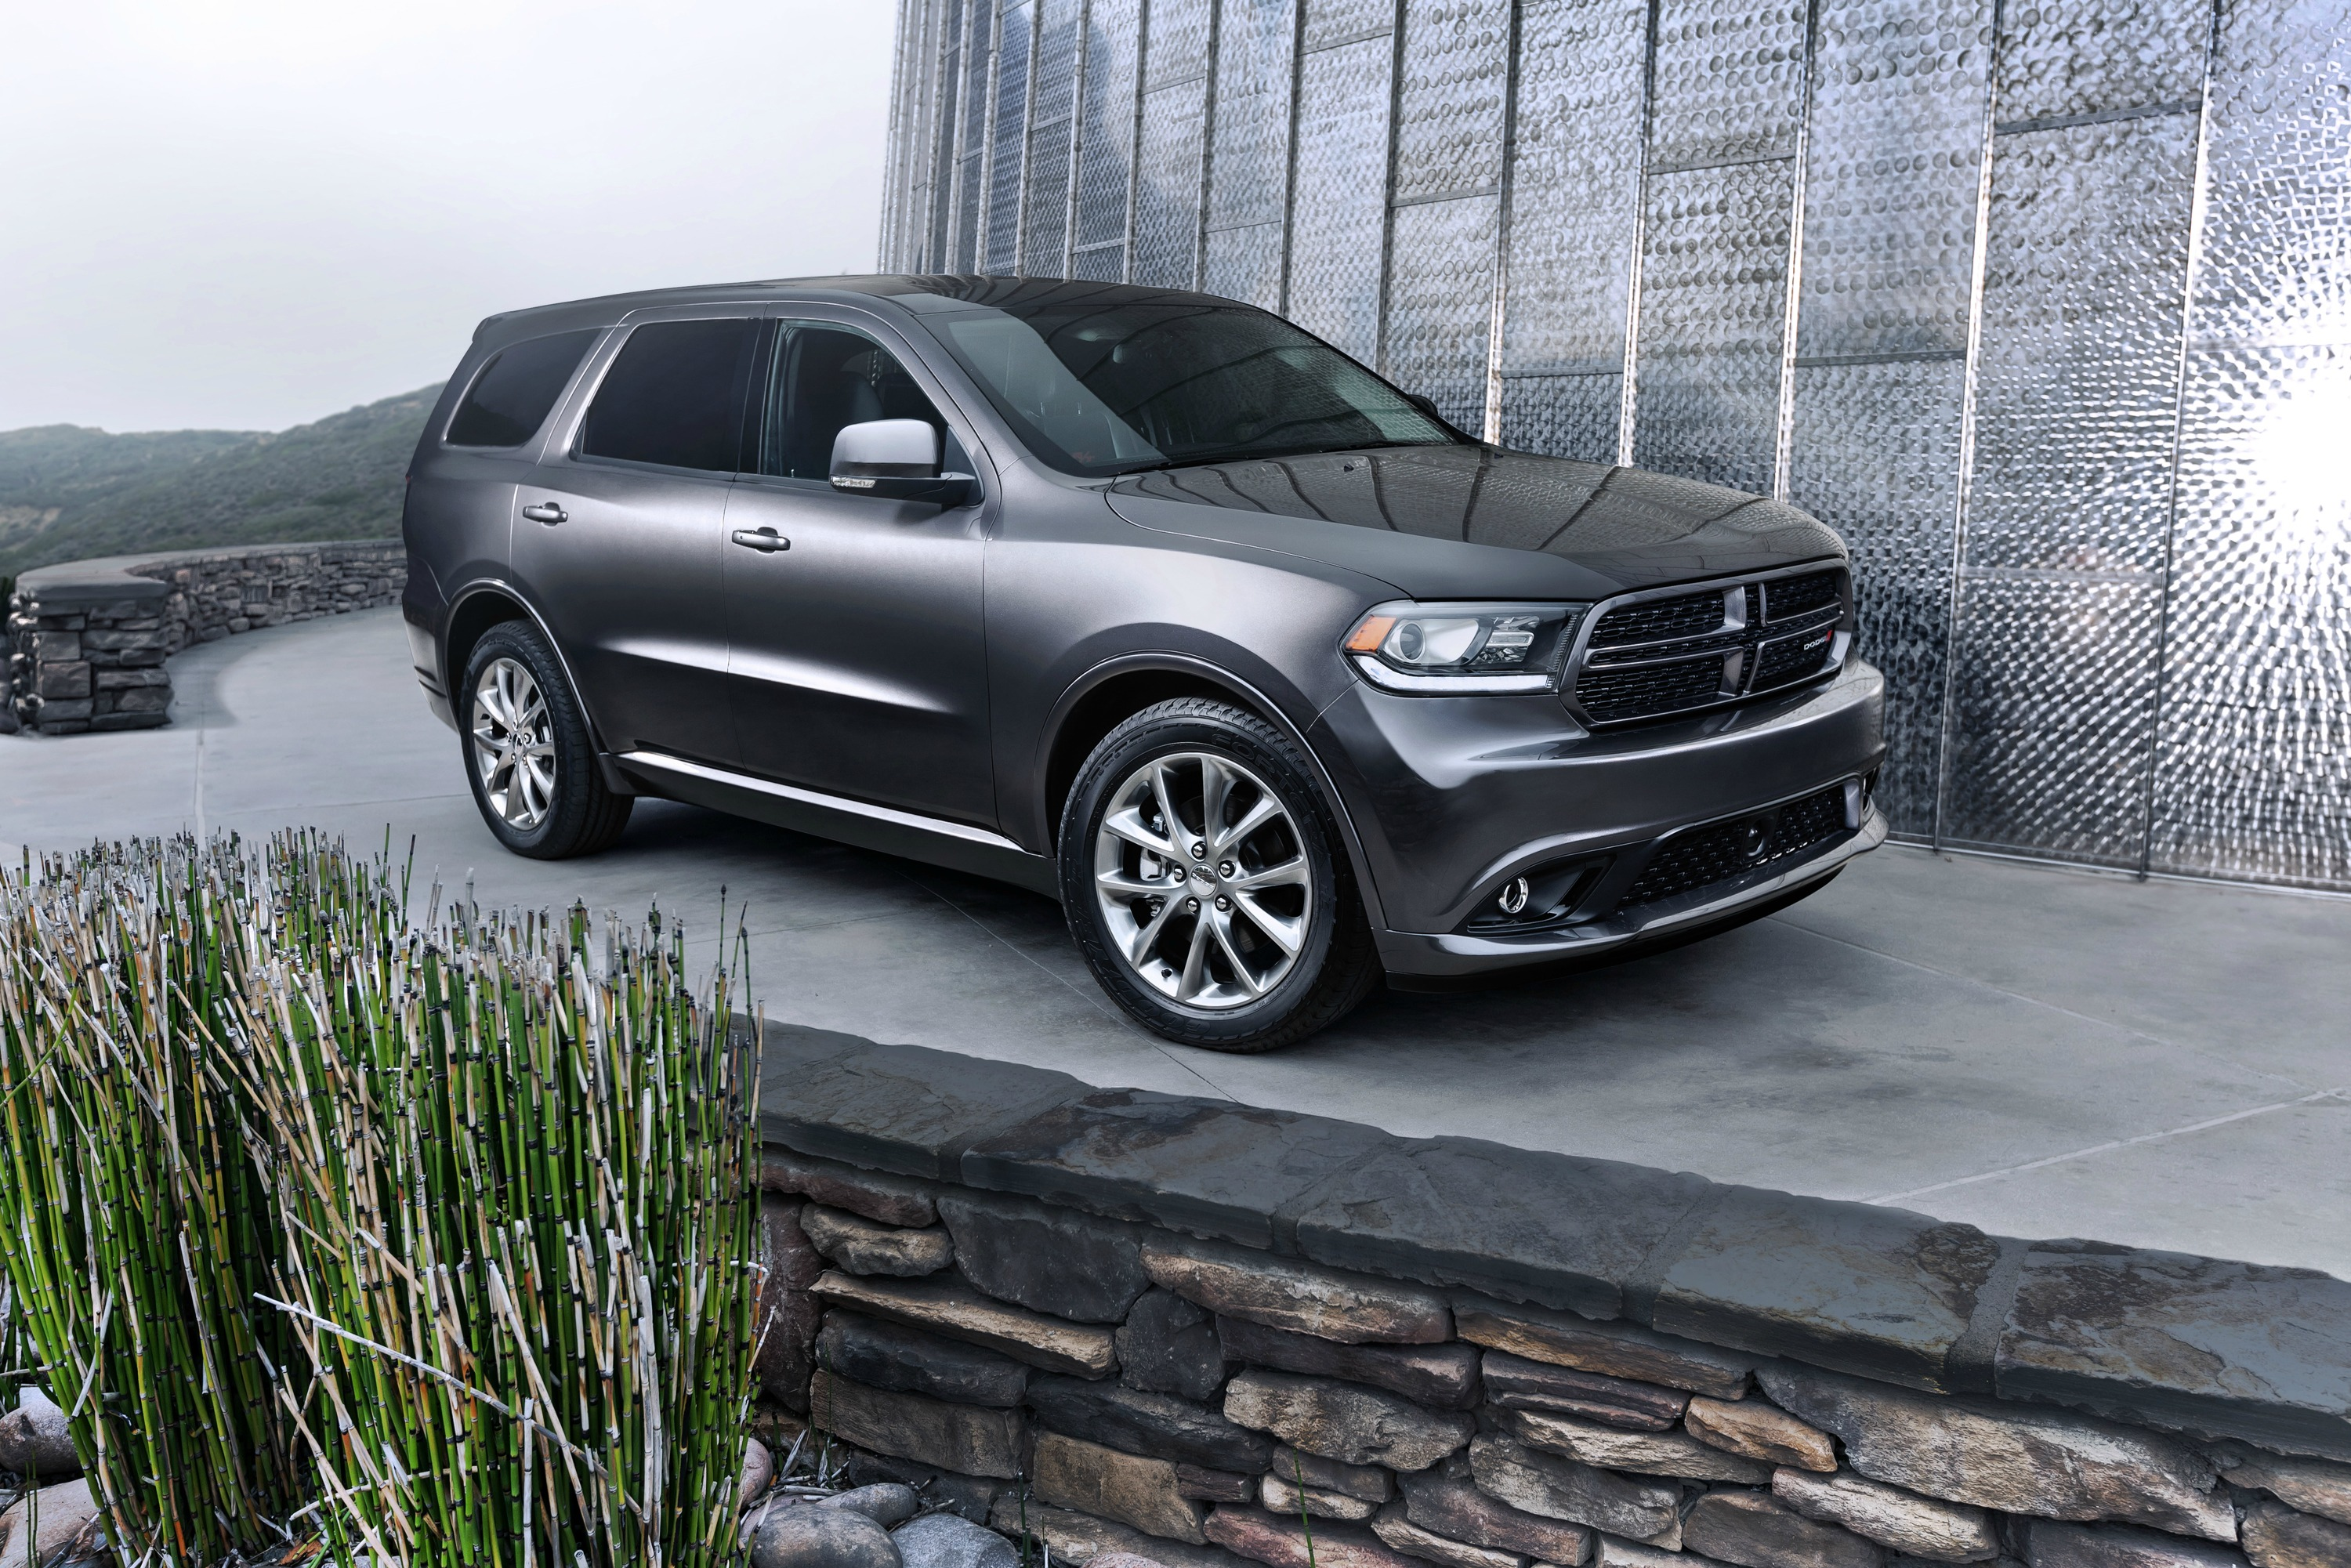 Dodge Durango Protect All That Is Yours Side View free image download